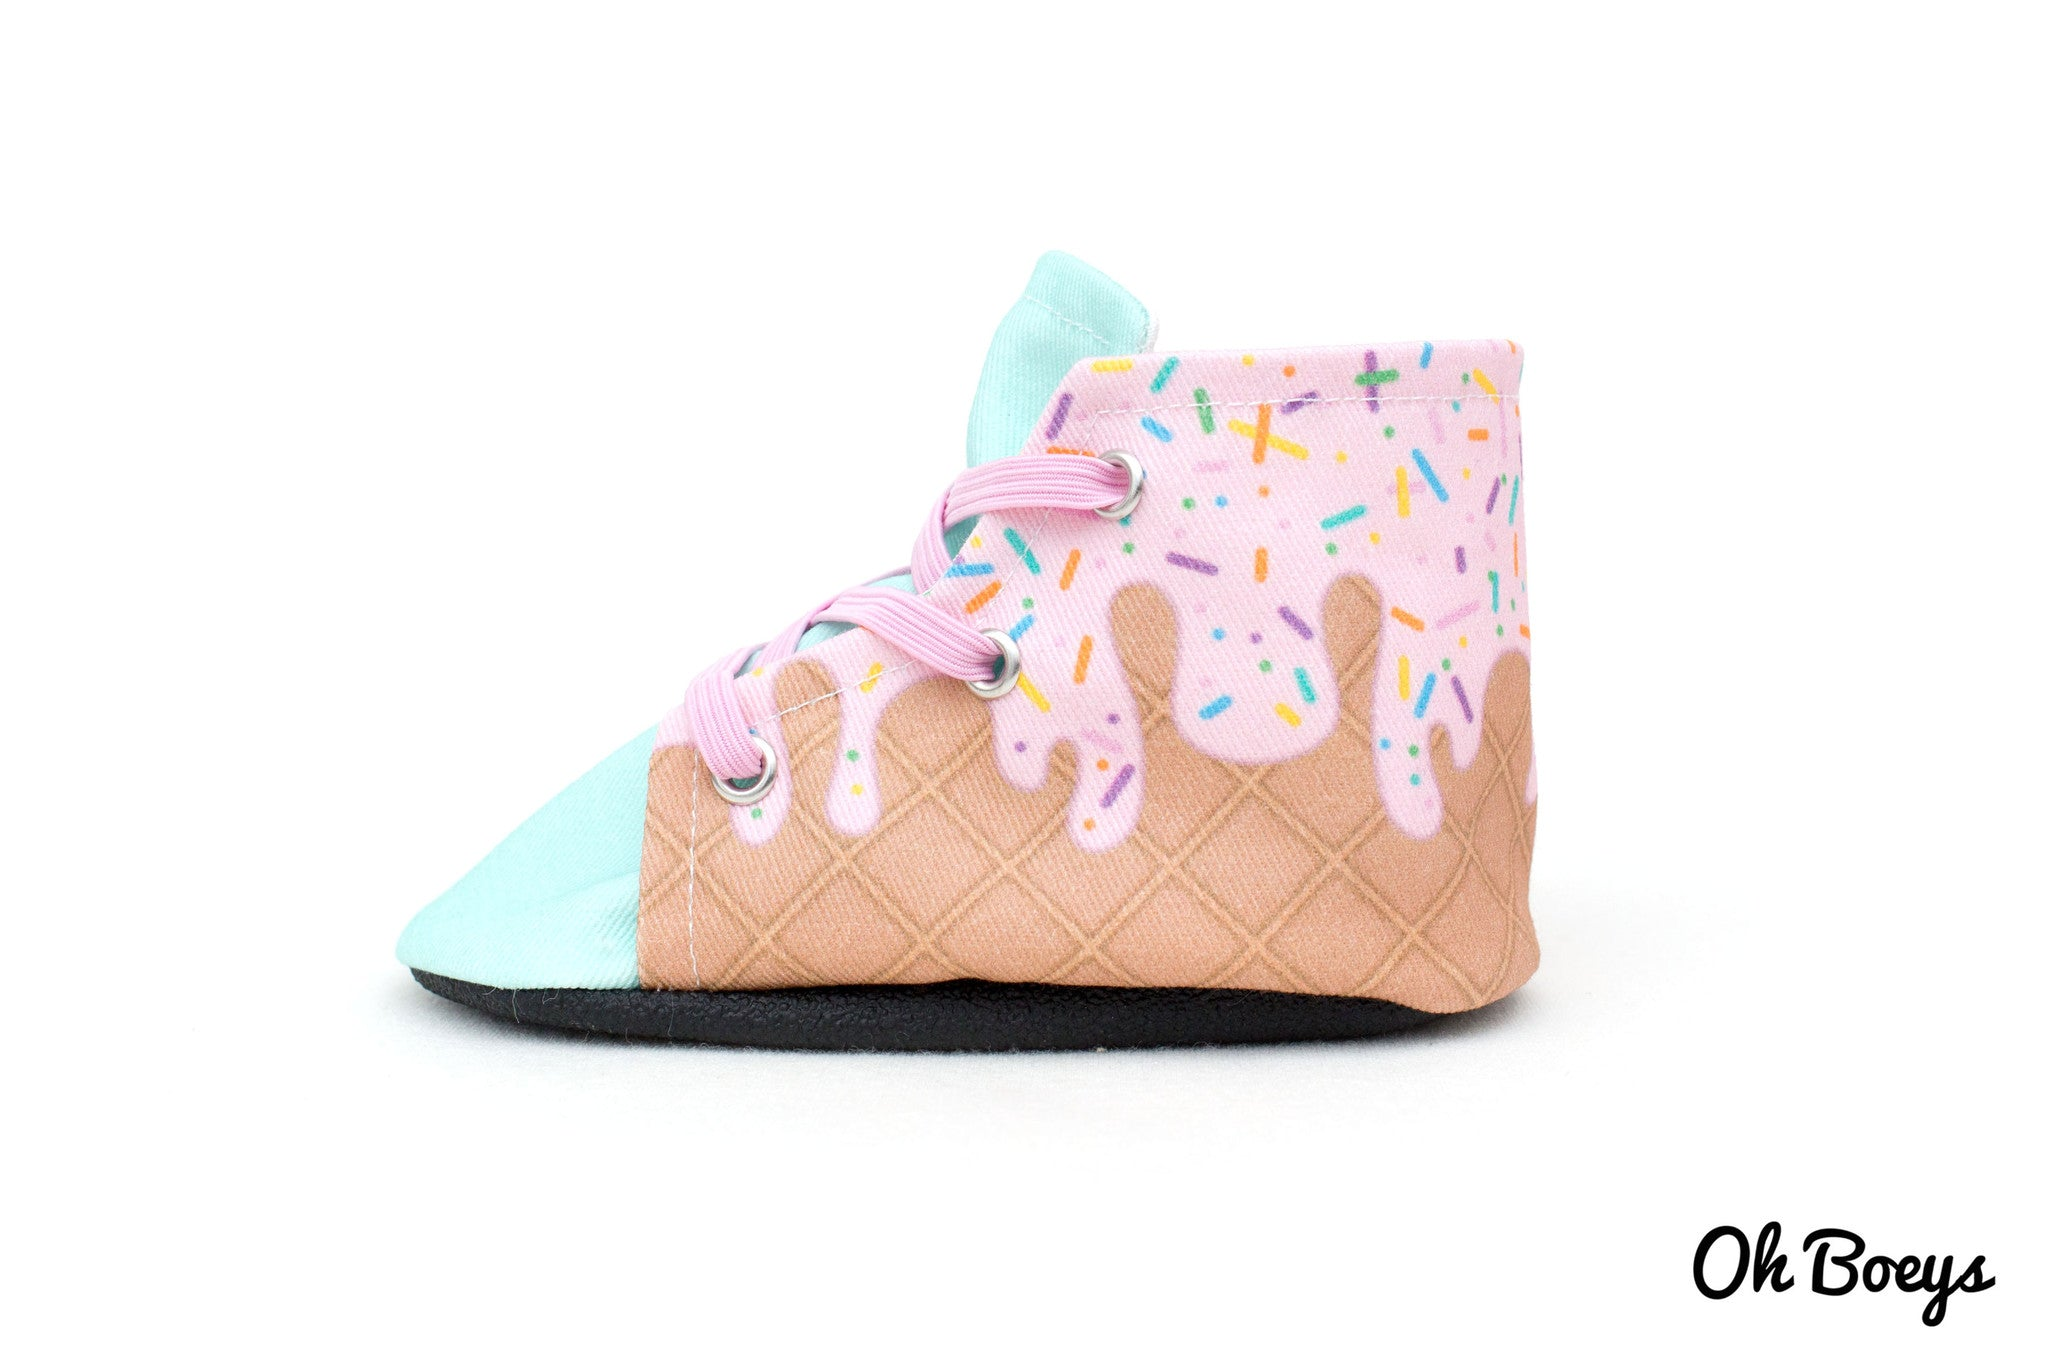 Strawberry Ice Cream Lace Up Shoes